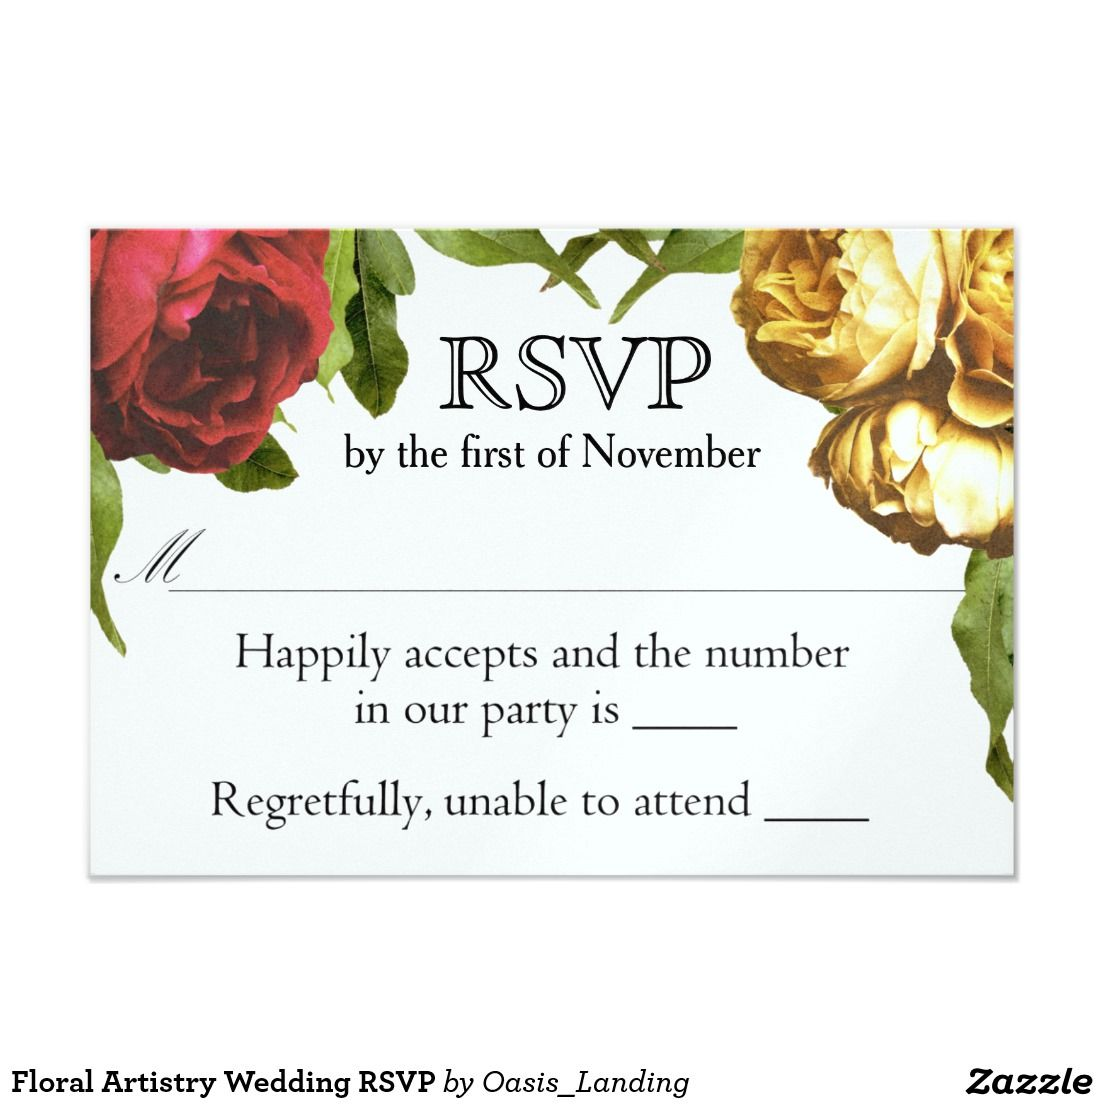 Cool 12 Inch Ruler Template Small 15 Year Old Resume Example Round 18 Year Old Resumes 1st Place Certificate Templates Old 2 Circle Template Soft2 Inch Button Template Floral Artistry Wedding RSVP Card | Floral, Zazzle Invitations And ..